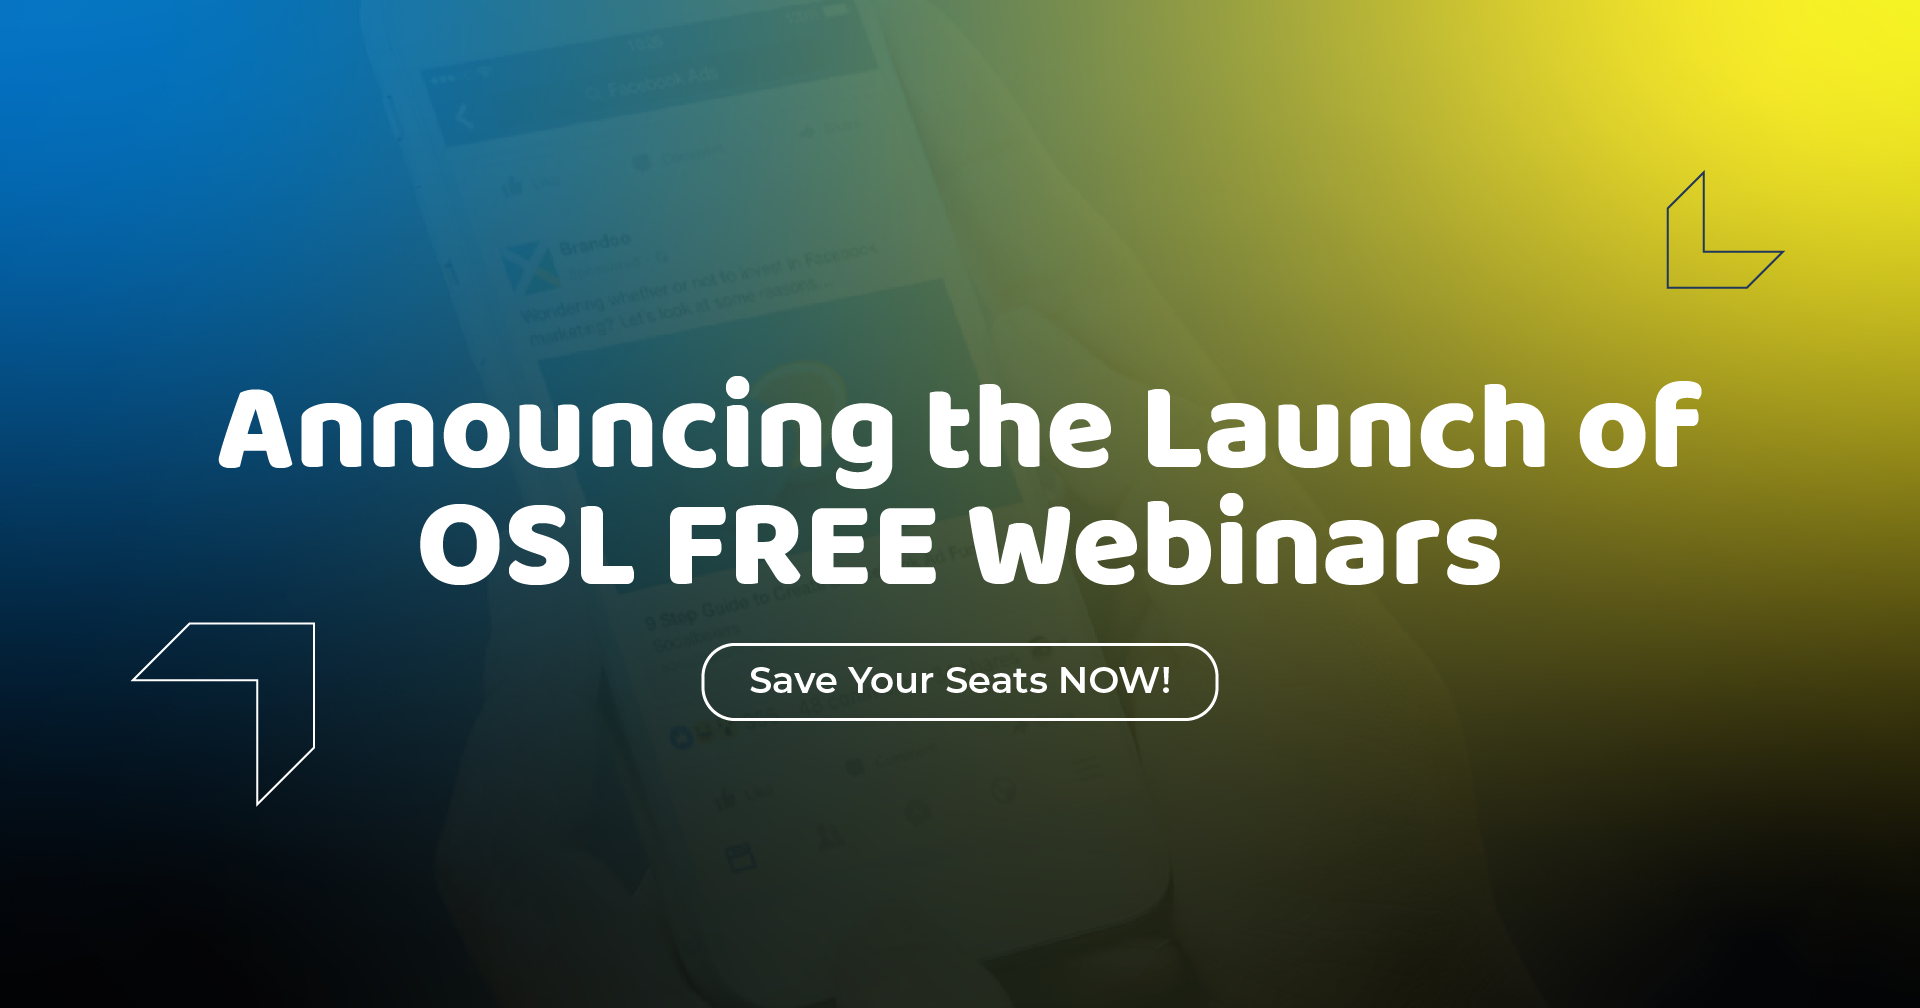 Announcing the Launch of OSL FREE Webinars